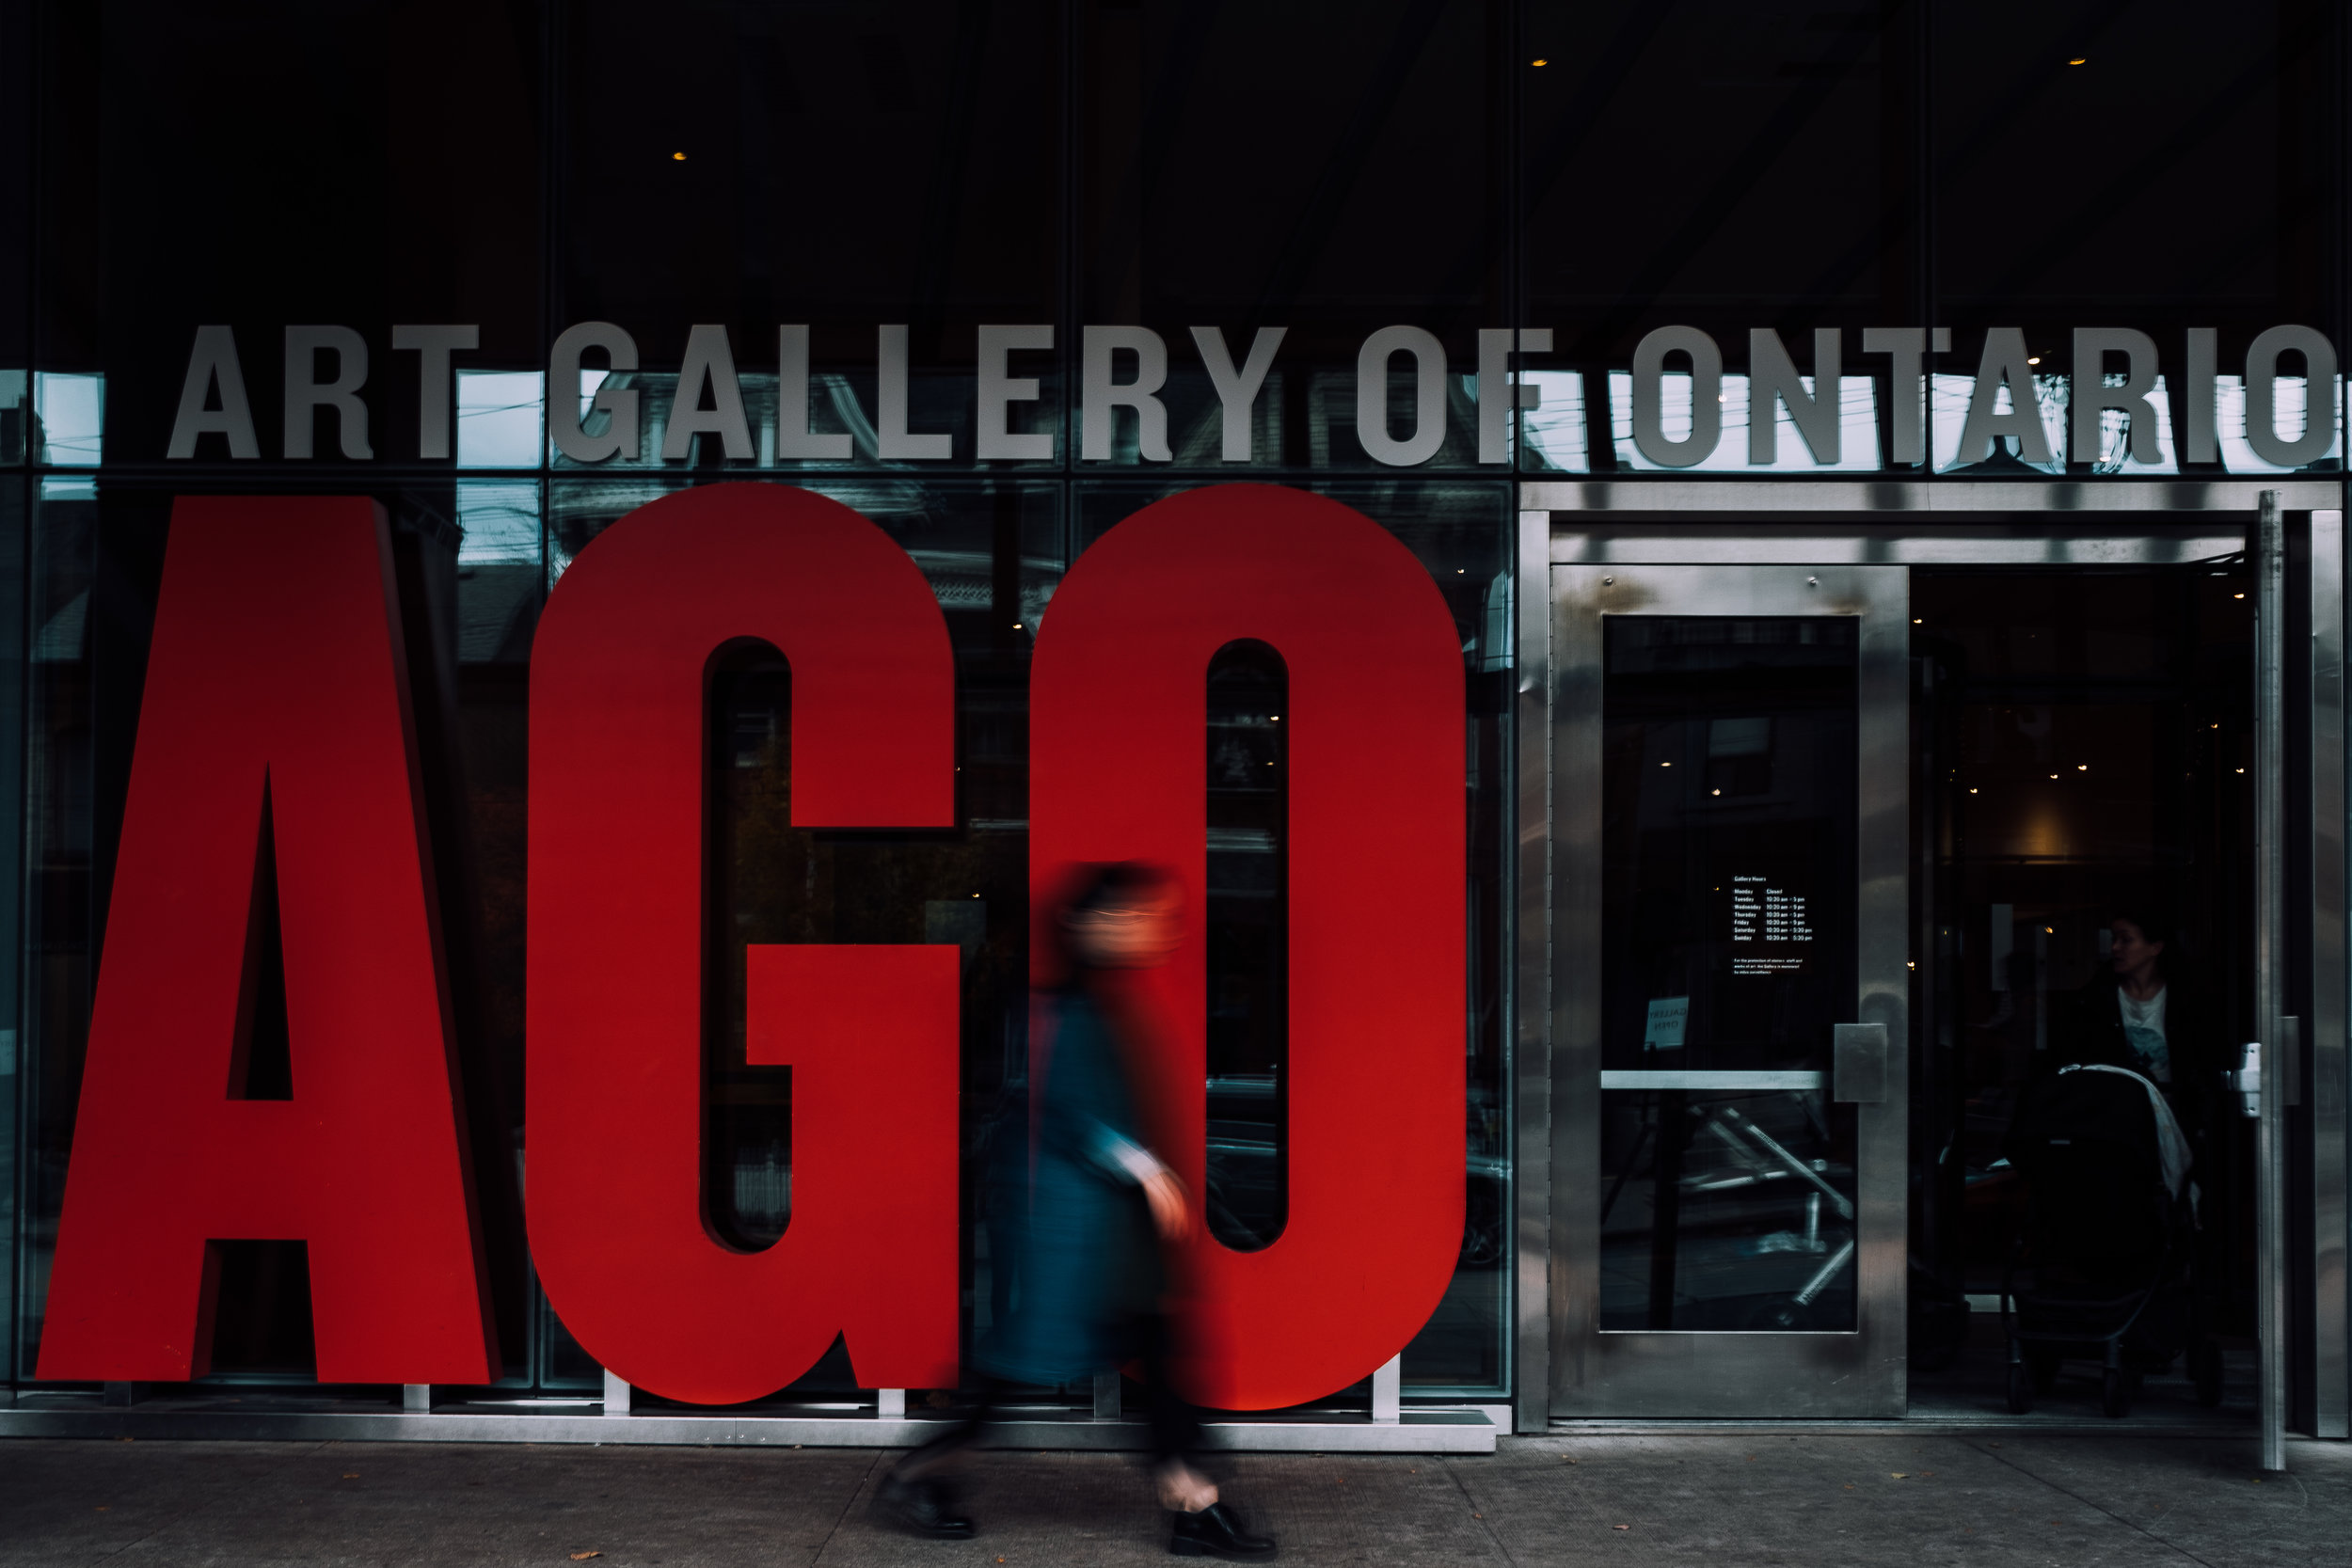 Art Gallery of Ontario.jpg